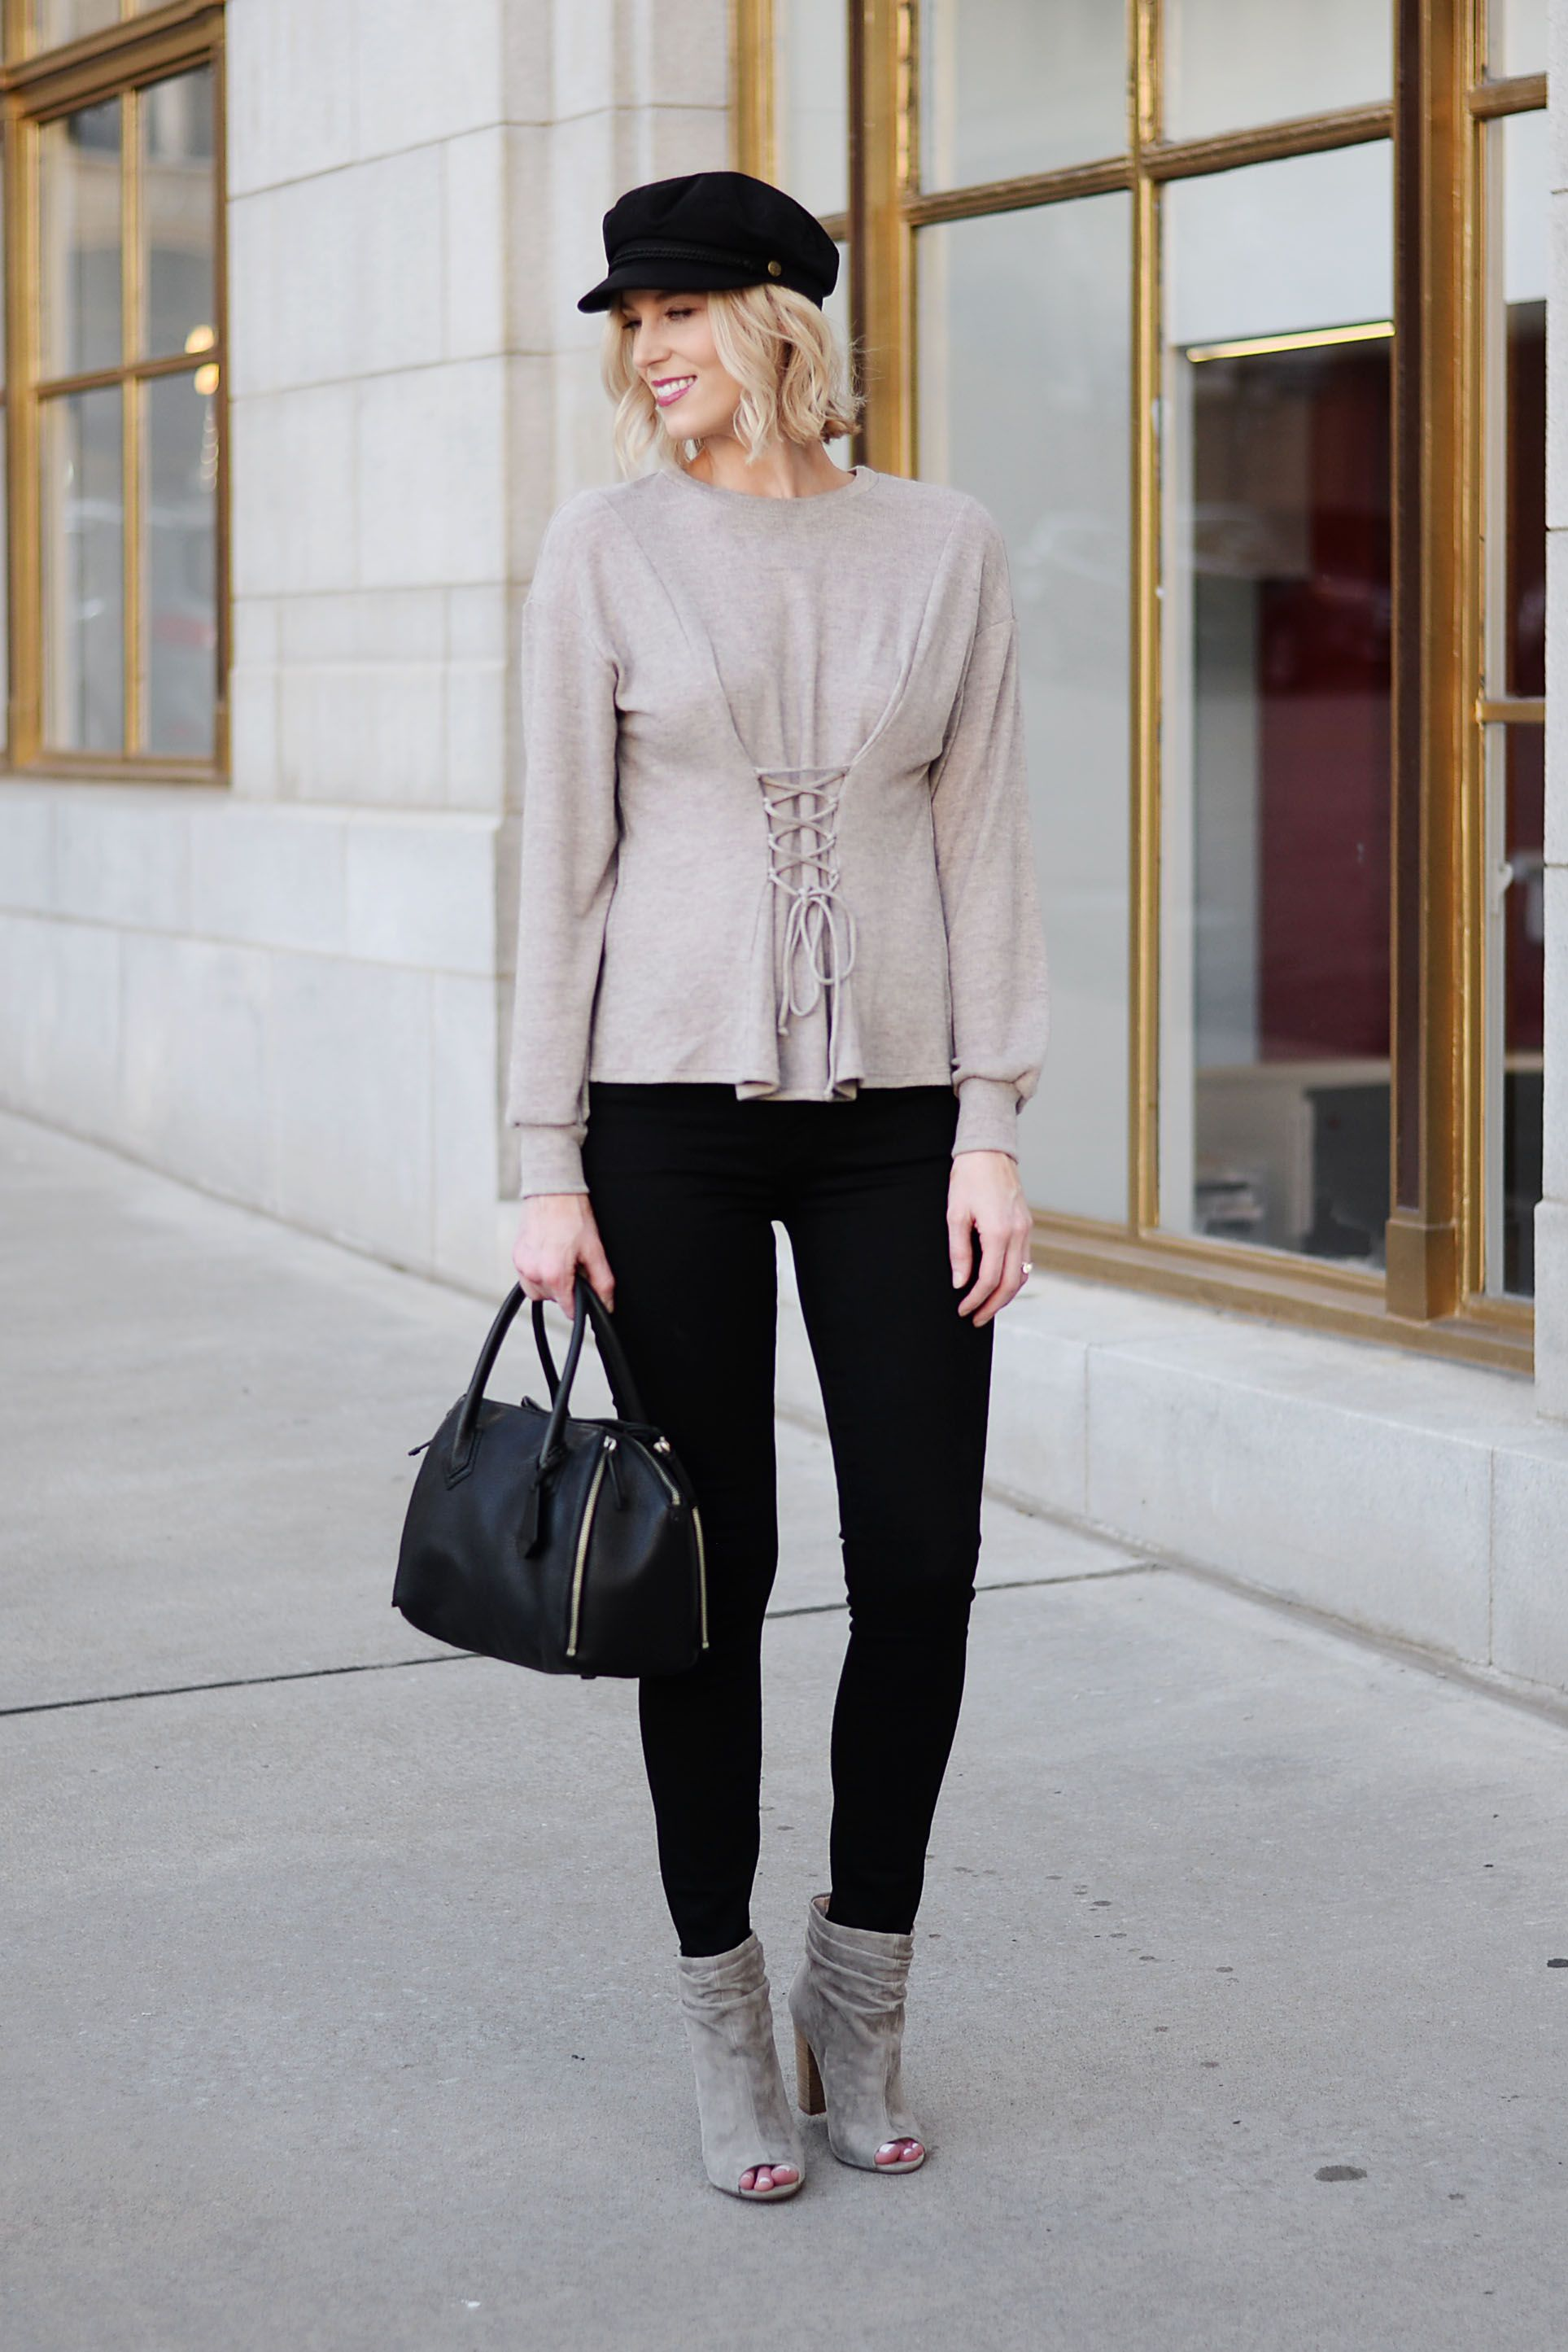 e18464f1b25 seriously slimming corset style top with black jeans baker boy hat and  slouchy booties - all of fall s hottest trends in one look!